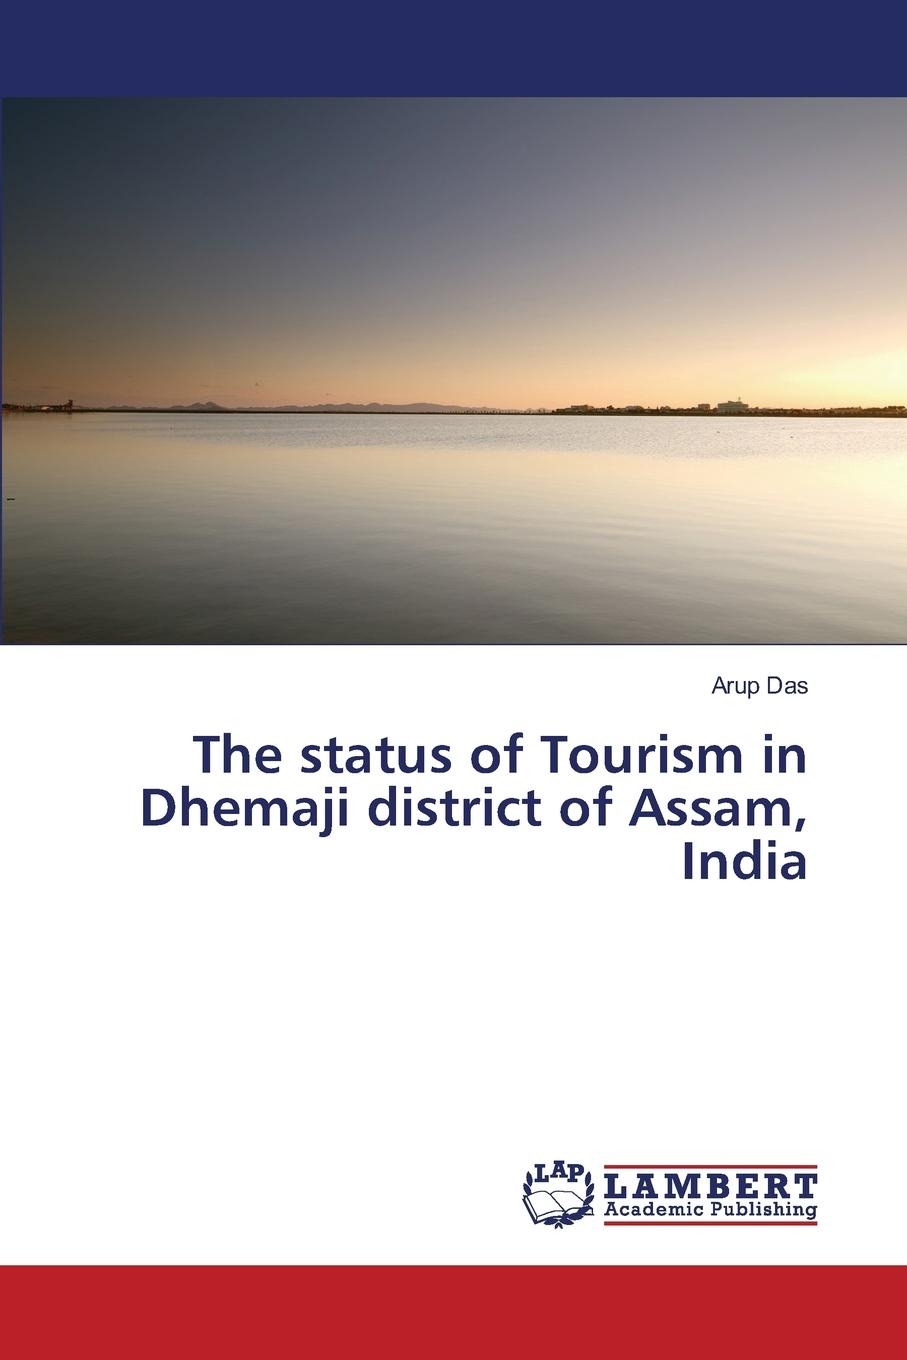 Das Arup The Status of Tourism in Dhemaji District of Assam, India jorinda ballering a tourism potential analysis of lundu district in malaysian borneo